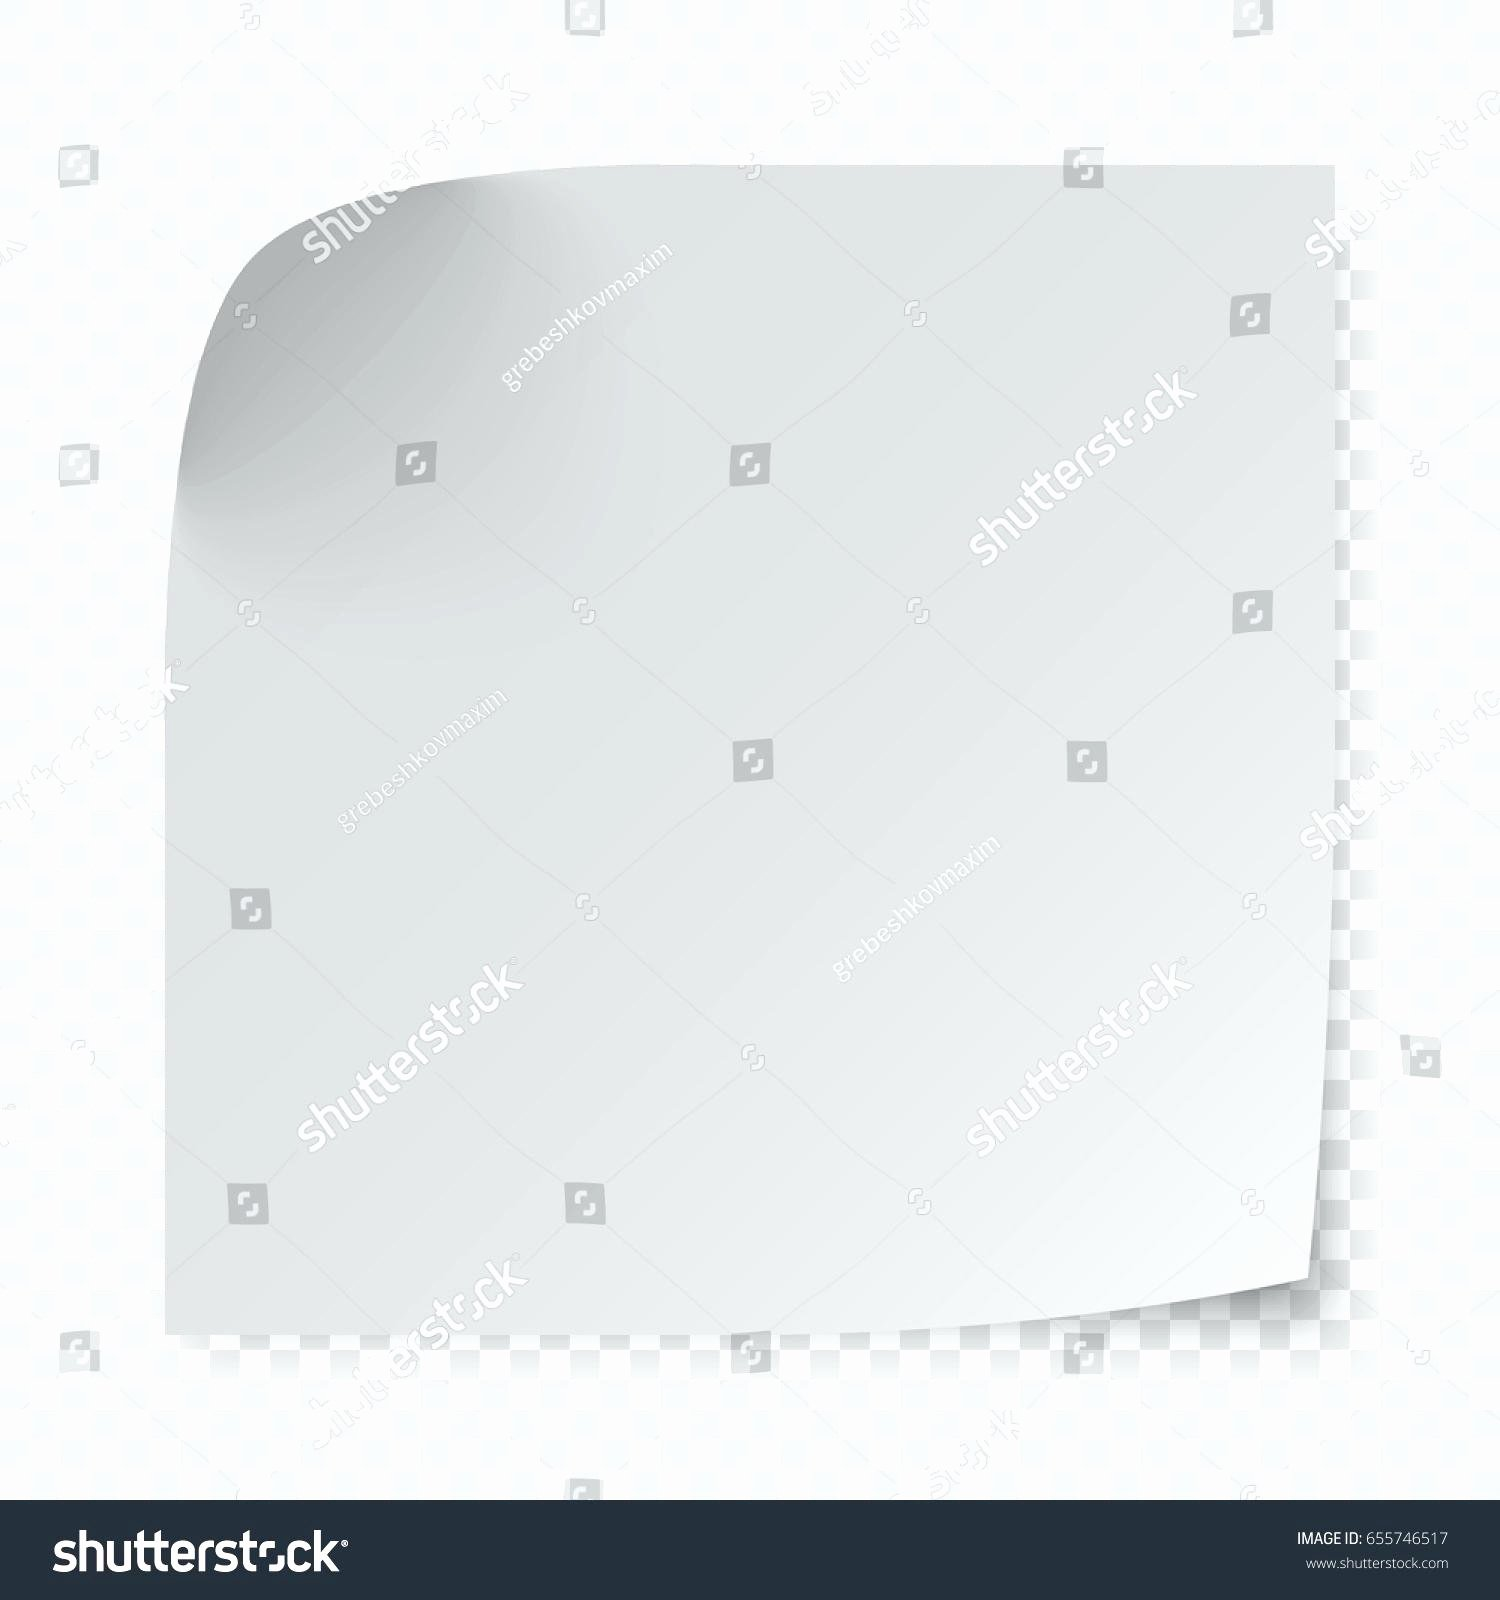 Printing On Post It Template Best Of Template Post It Note Printing Template